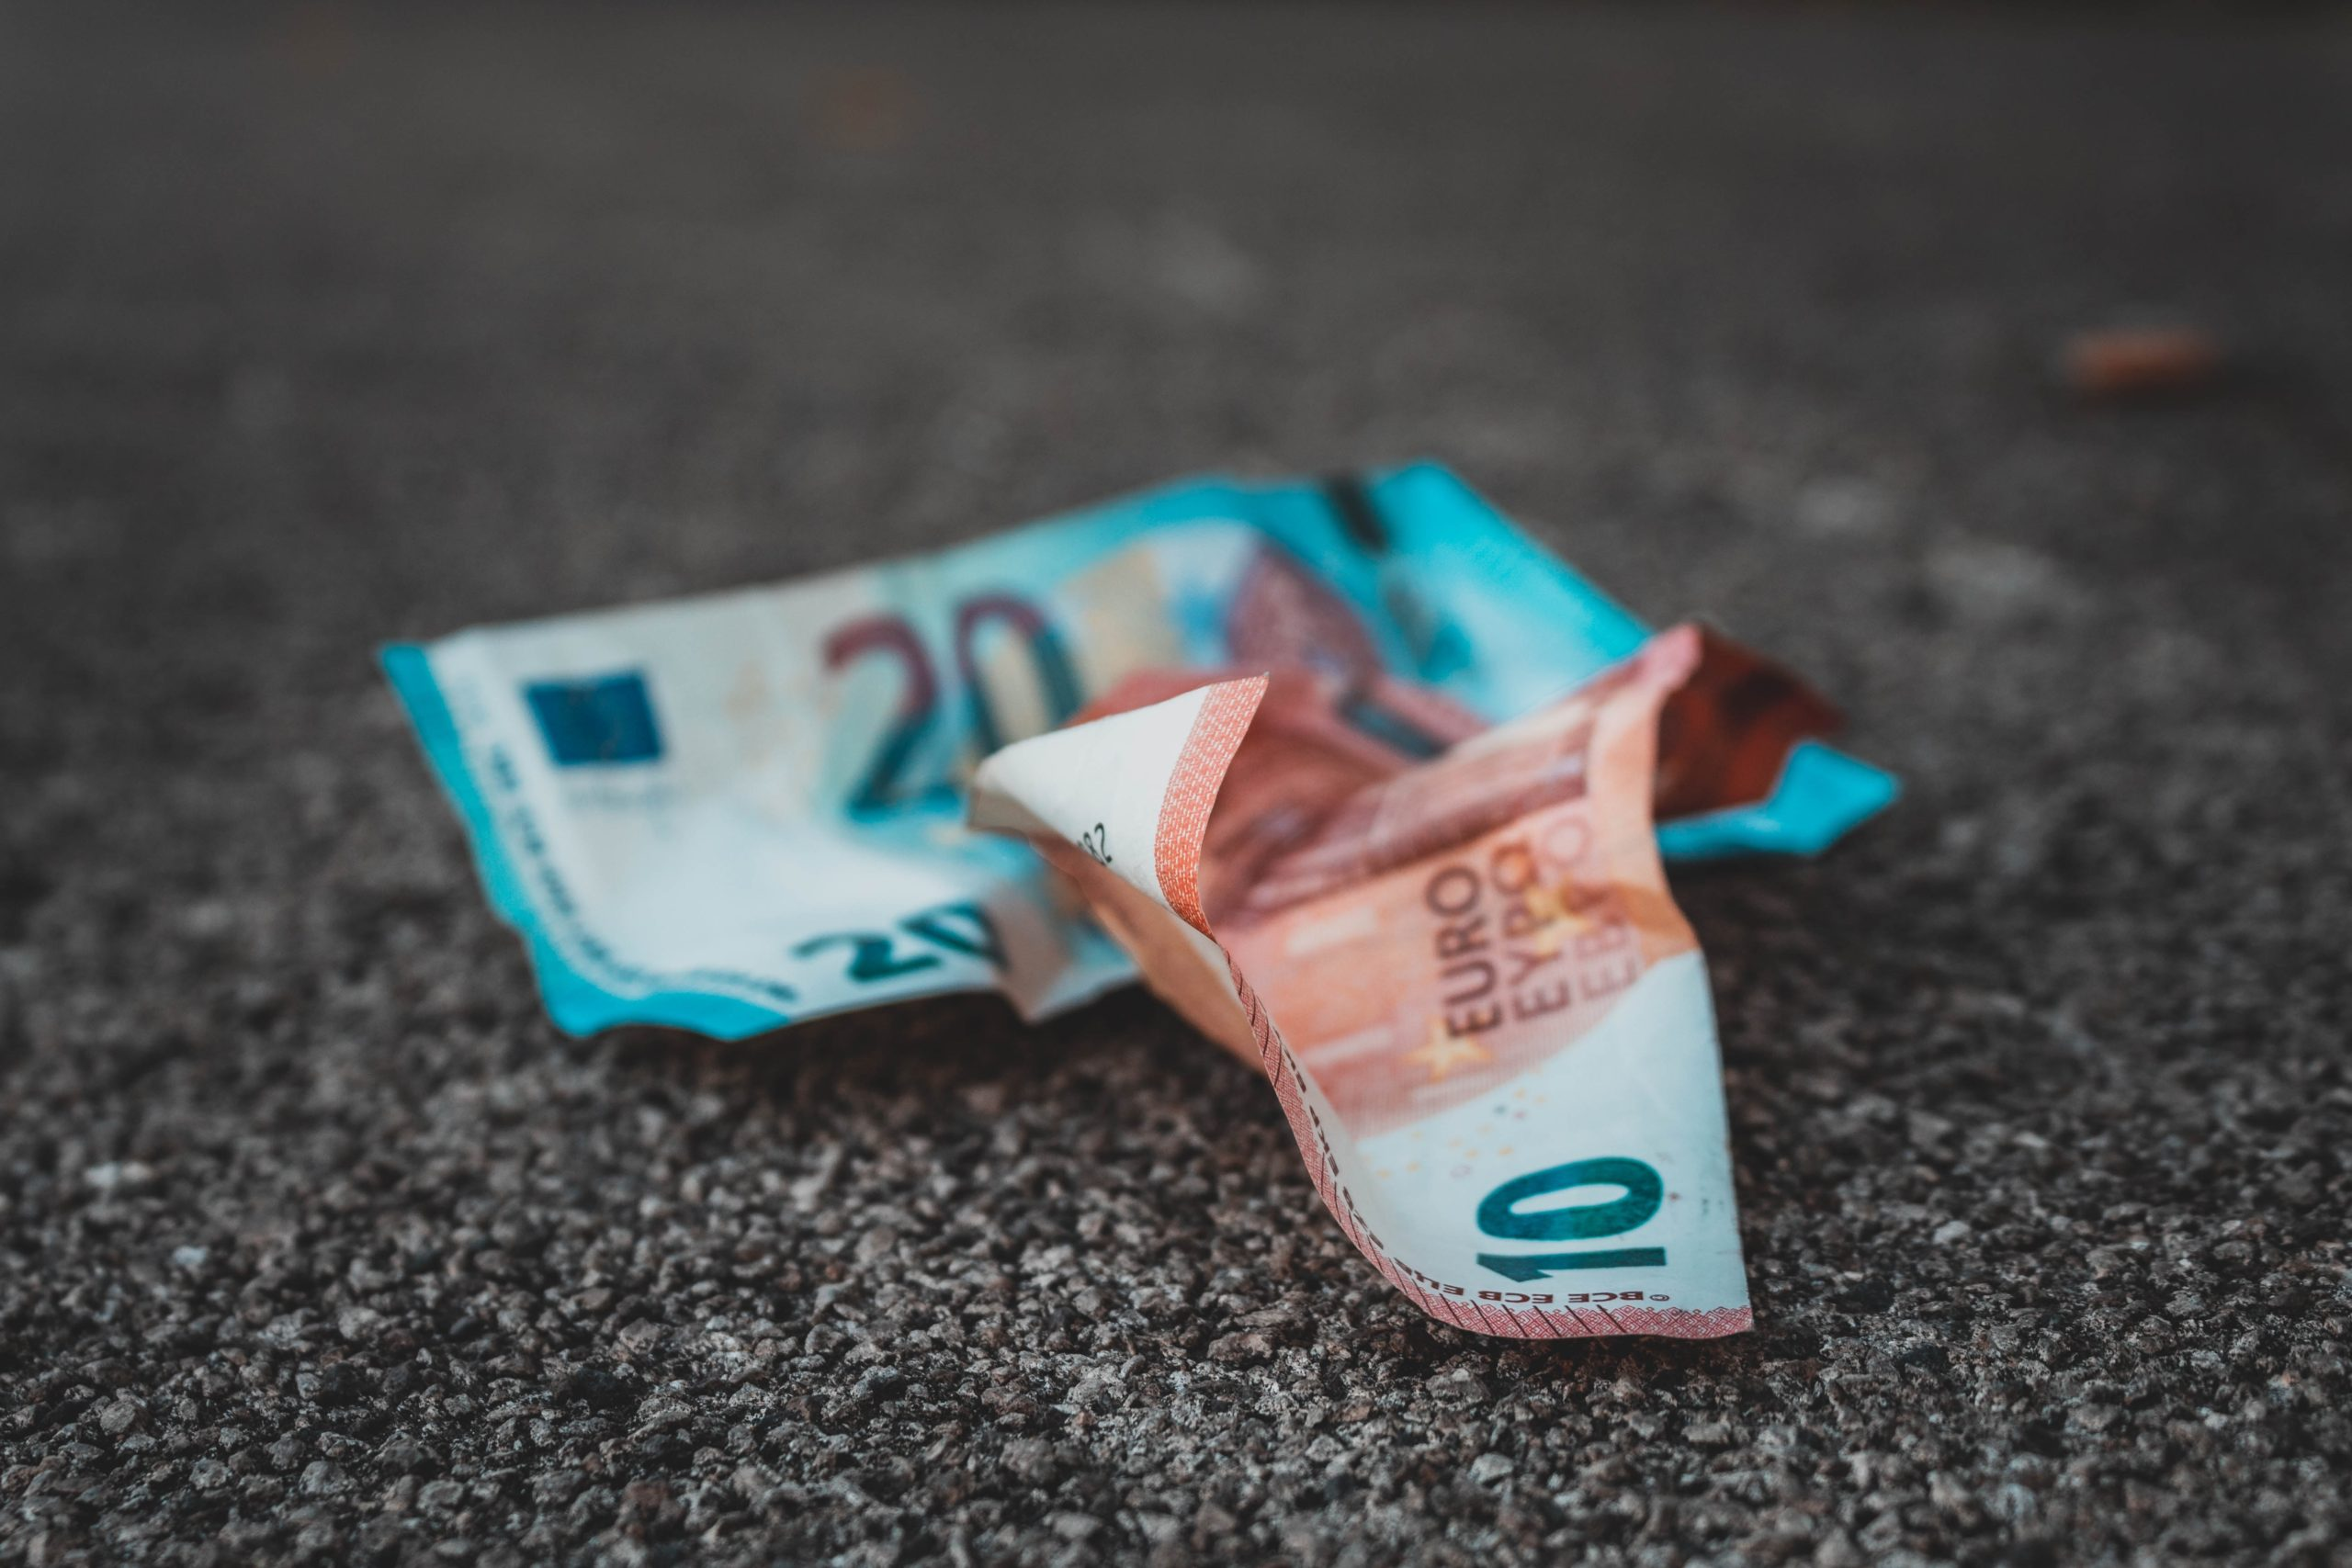 A pile of crumpled euros on the ground